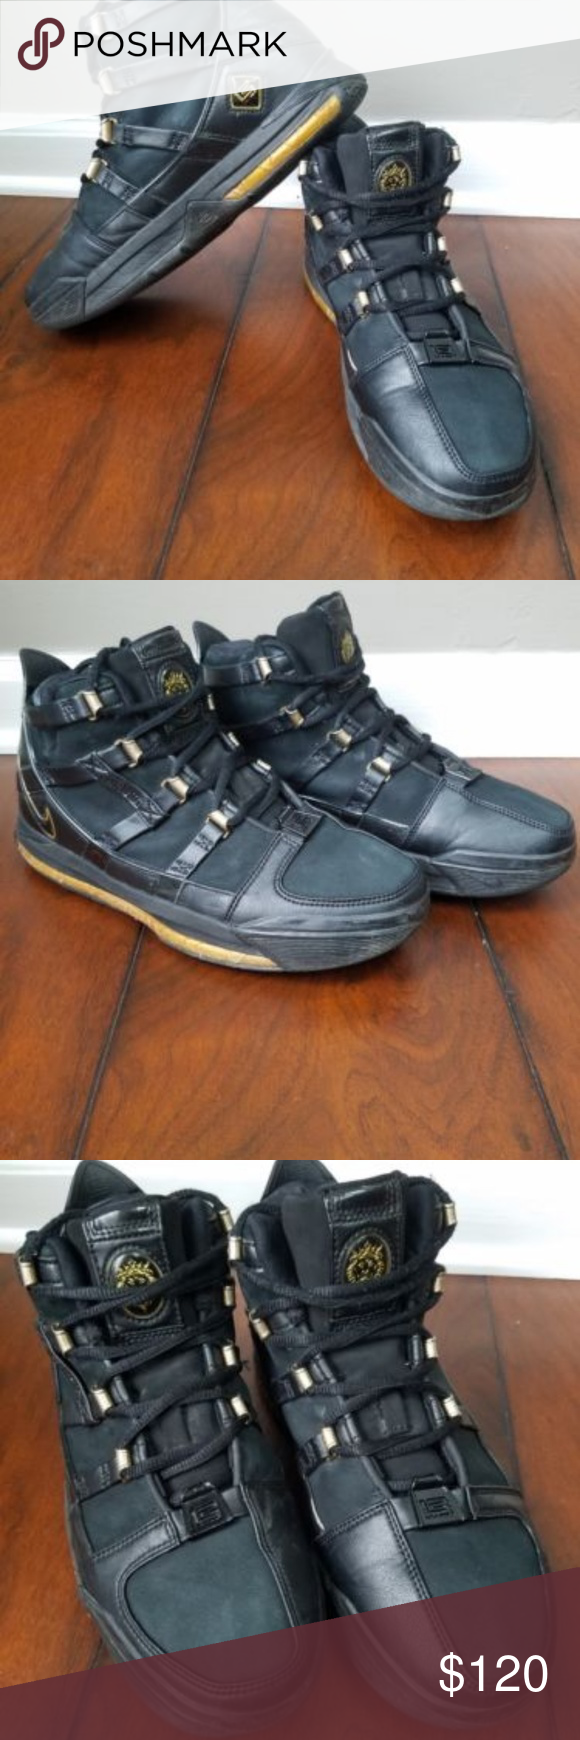 27ebb4737b644a Nike Zoom Lebron 3 Black Gold Sneaker Sz 8 Great shape shoes! Black and Gold  Nike Zoom Mettalic Gold Lebron 3 High Top Basketball sneakers. Size Mens 8.